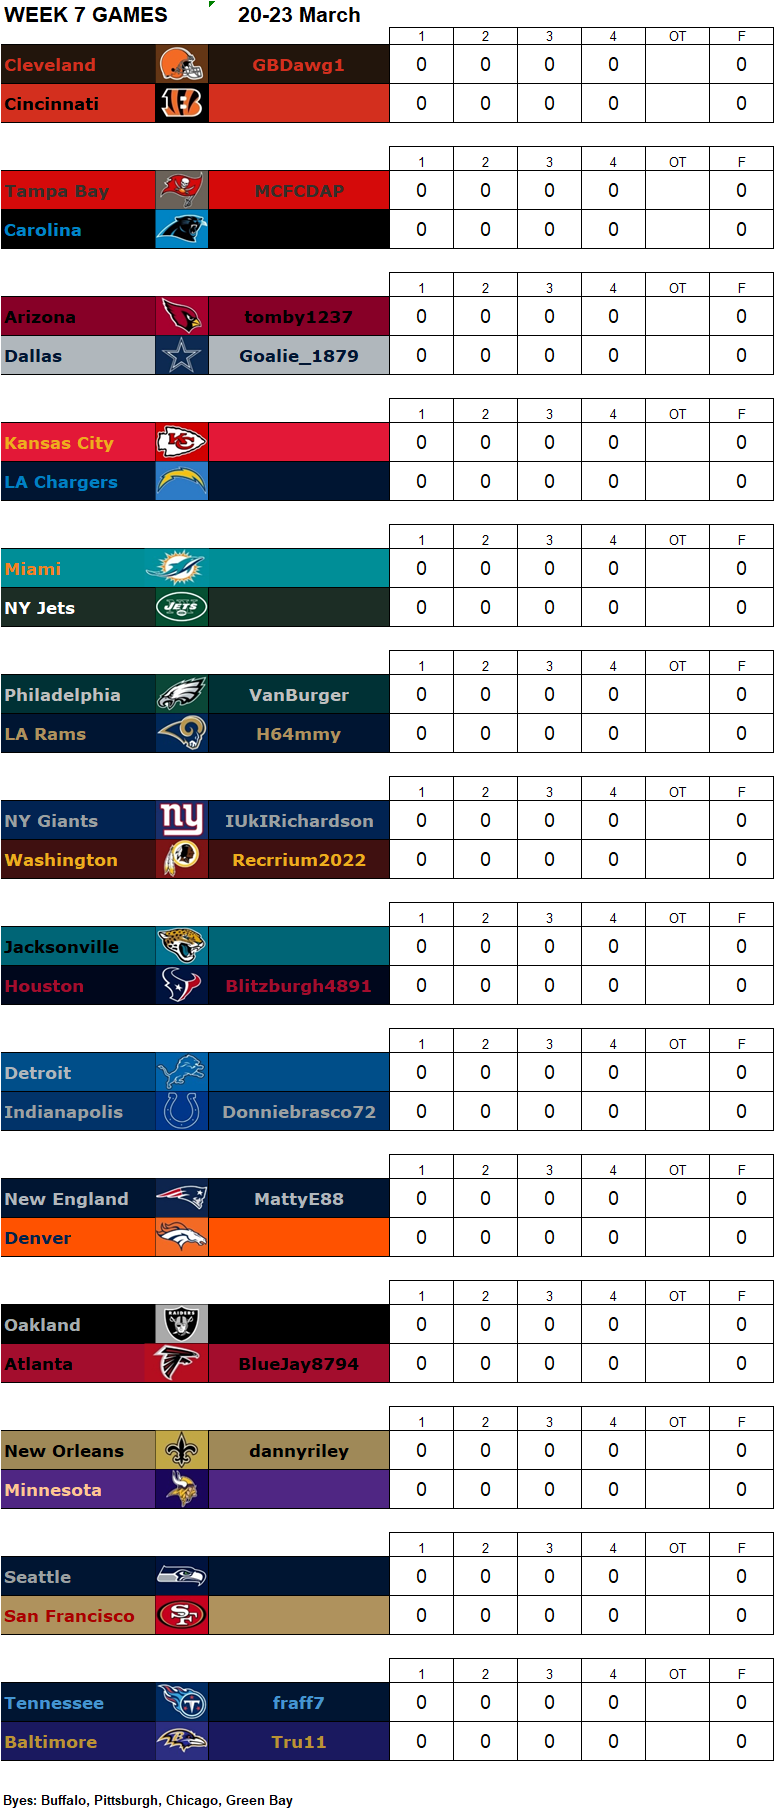 Week 7 Matchups, 20-23 March W7g12